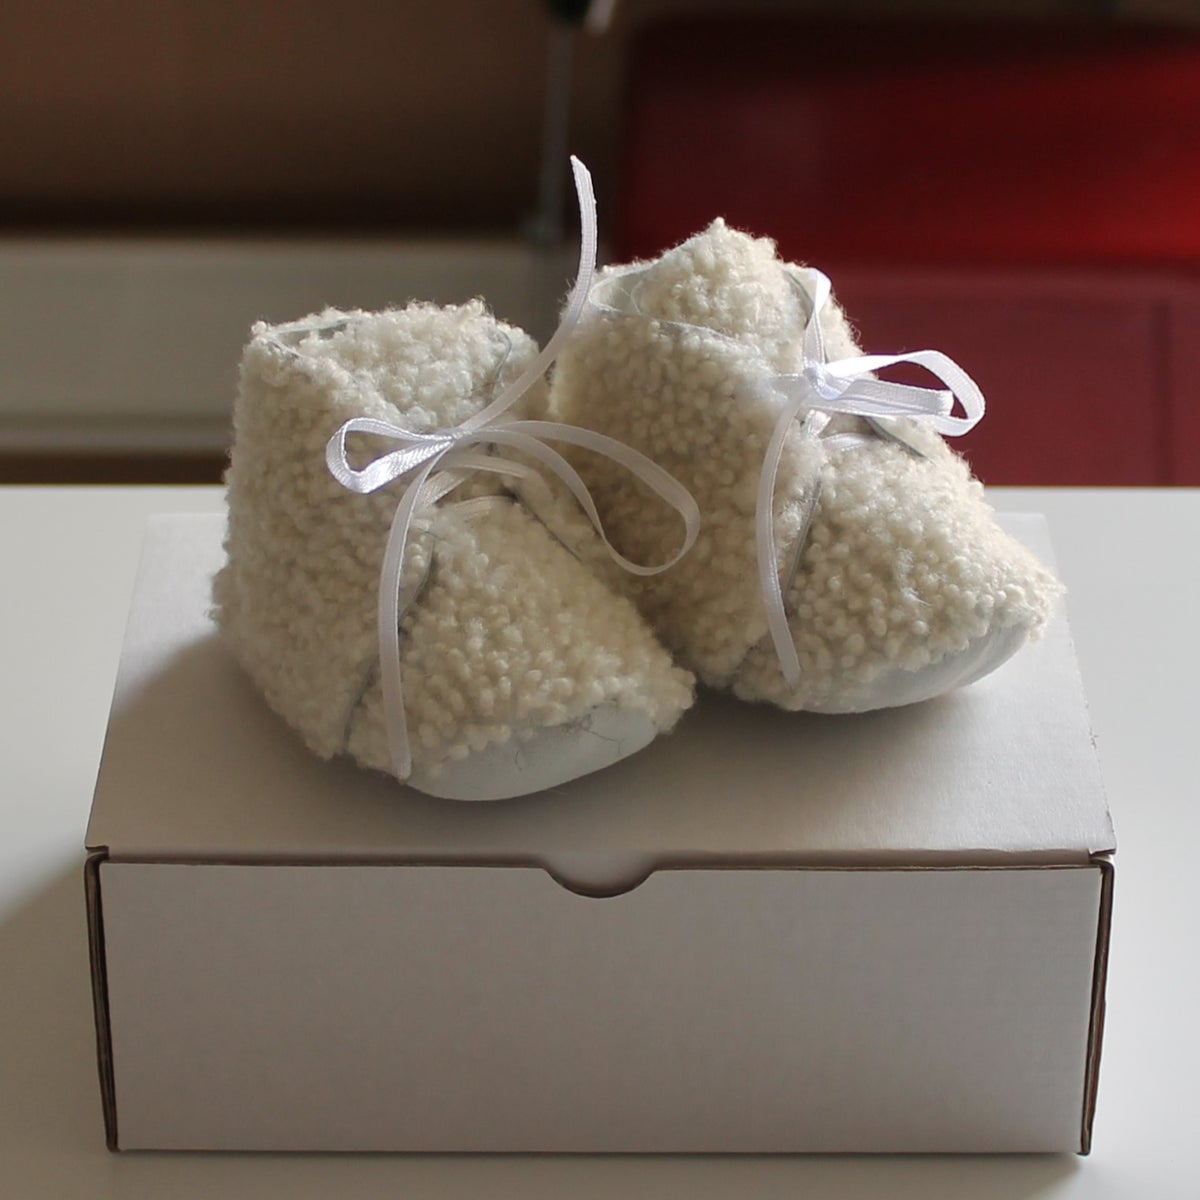 Baby Boots 0-3 months